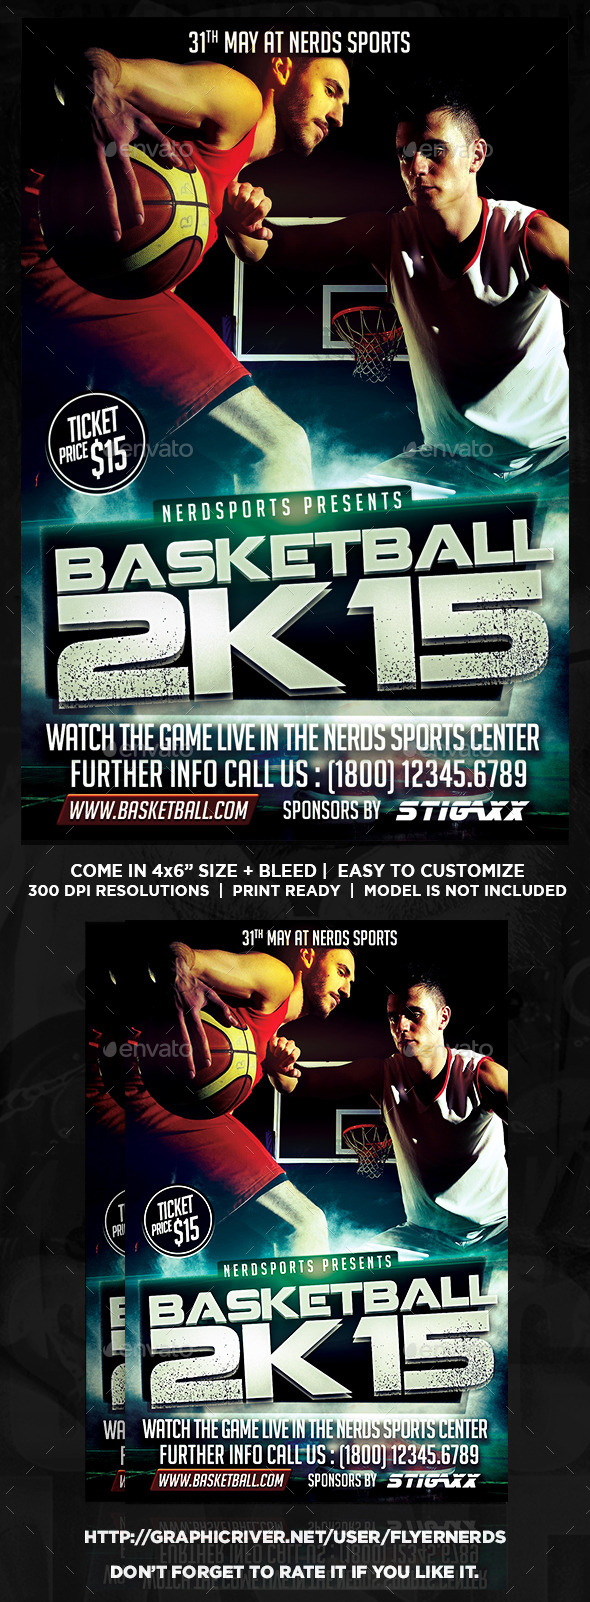 GraphicRiver Basketball 2K15 Sports Flyer 10943046